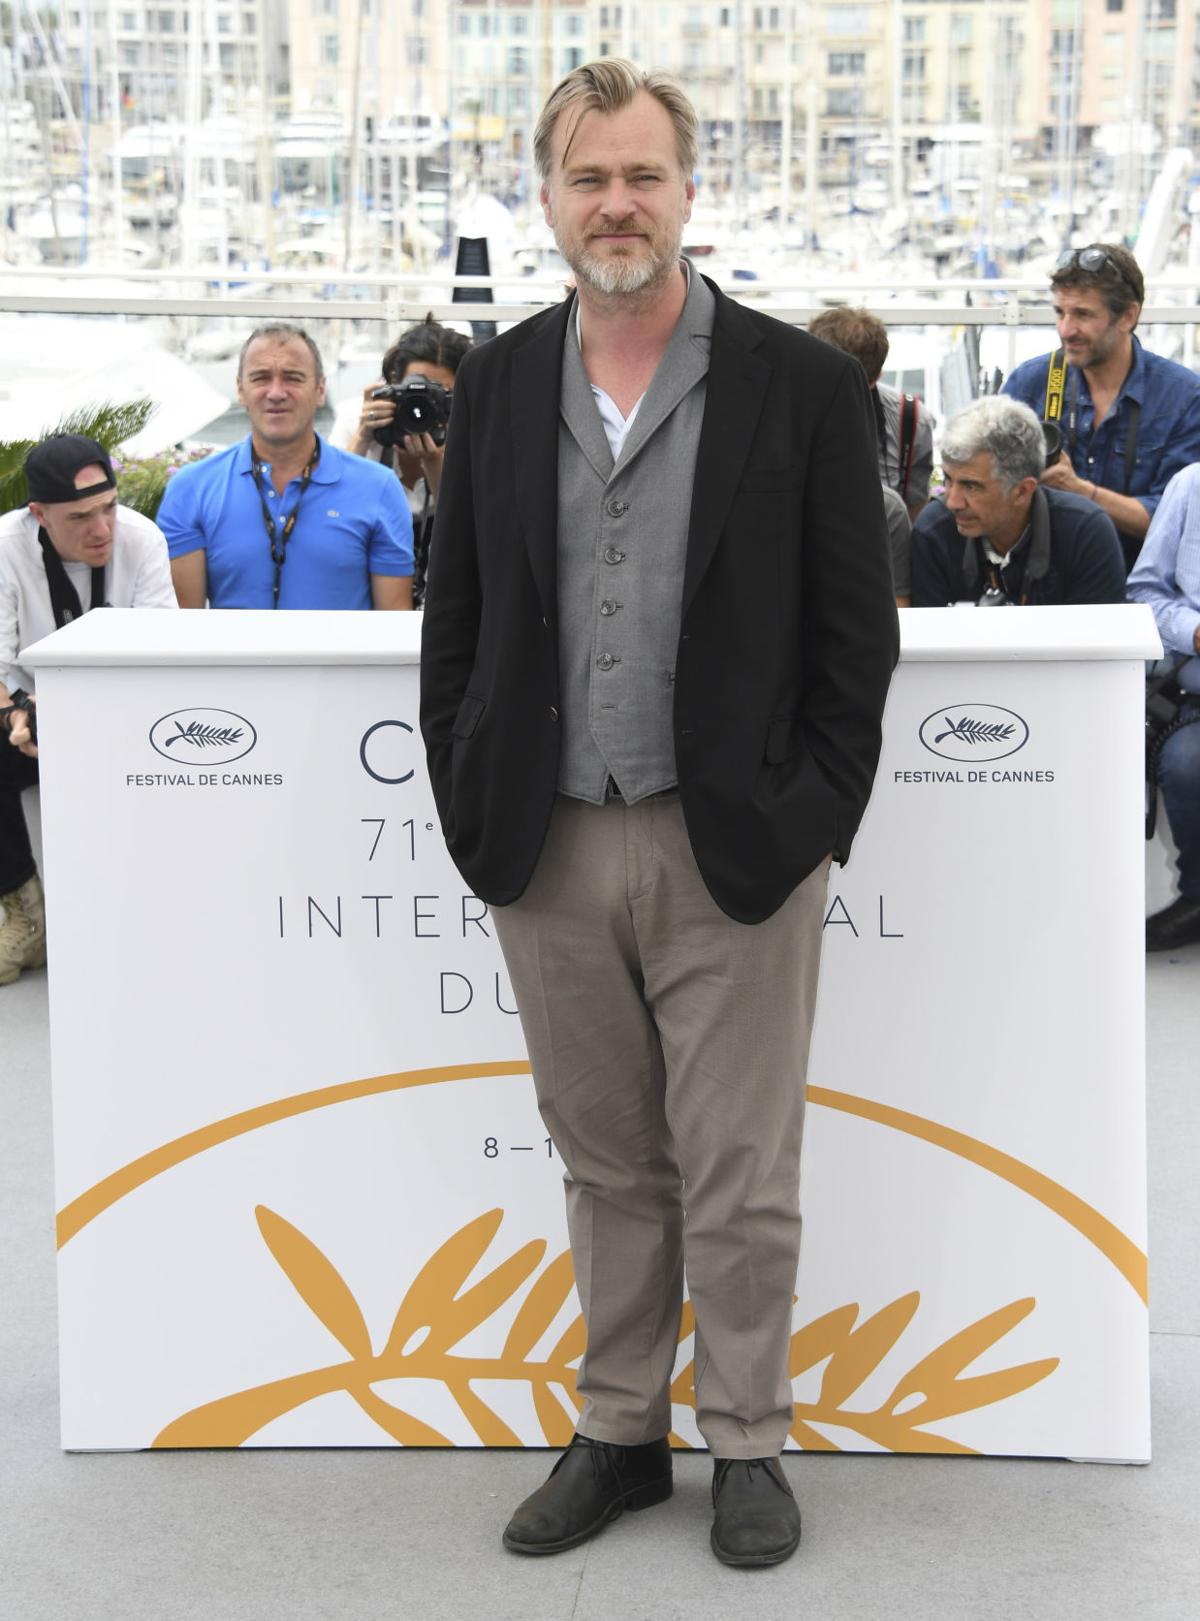 France Cannes 2018 Christopher Nolan Photo Call